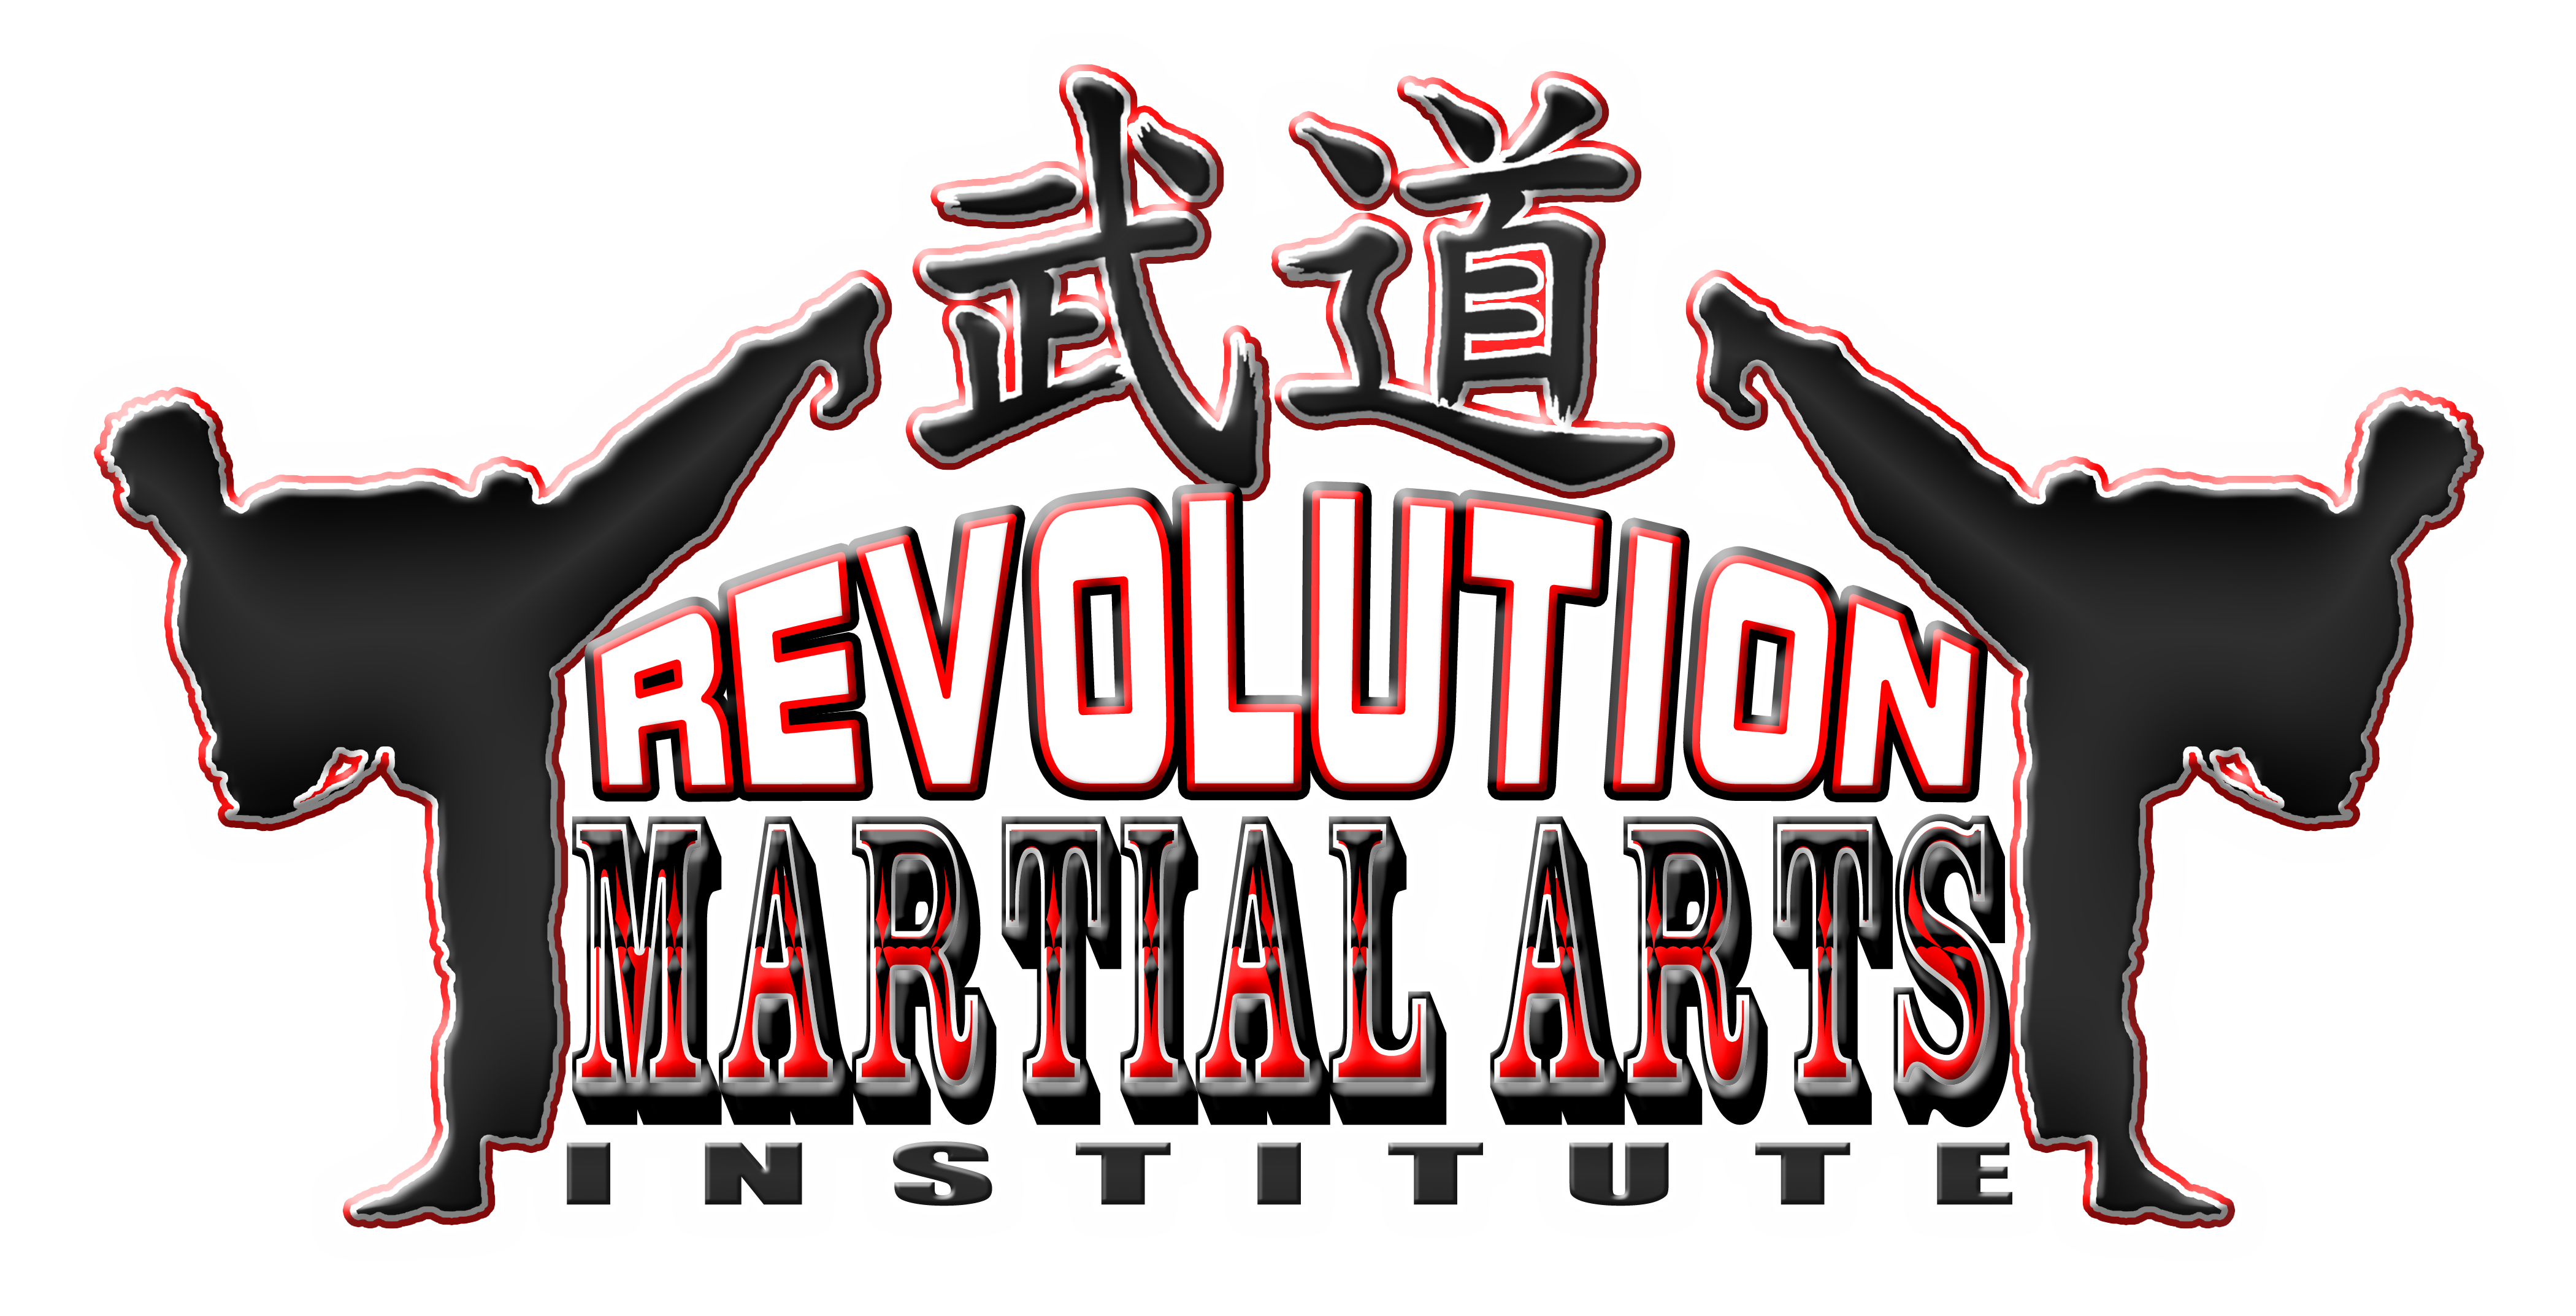 Revolution Martial Arts Institute